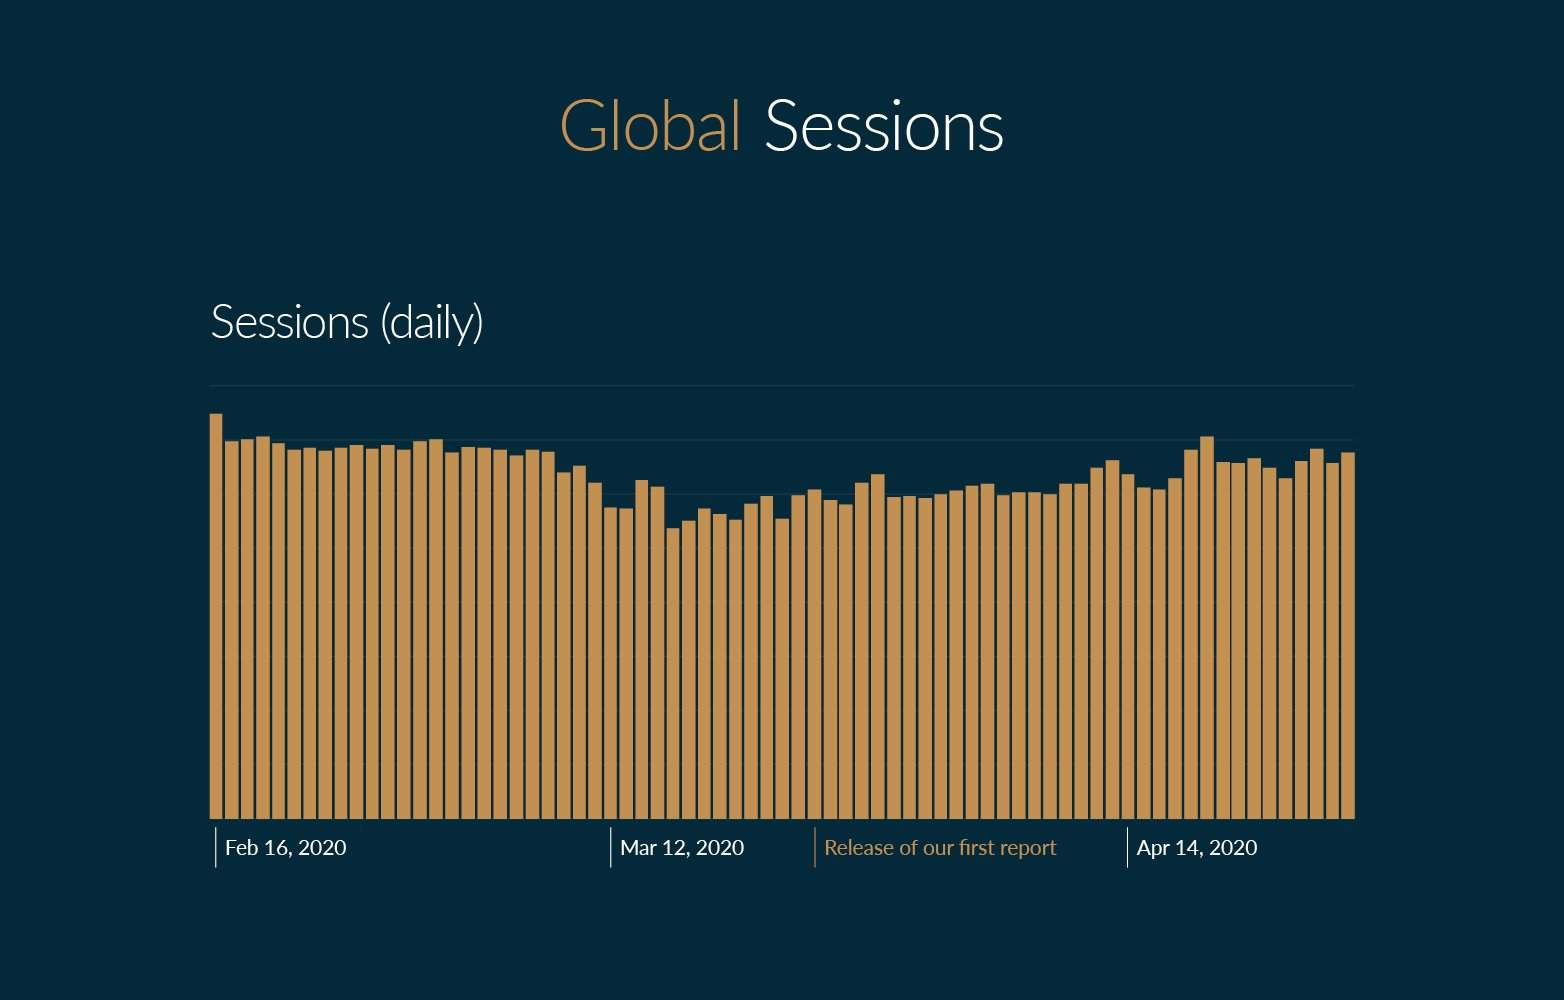 Global Sessions on Chrono24 (daily)